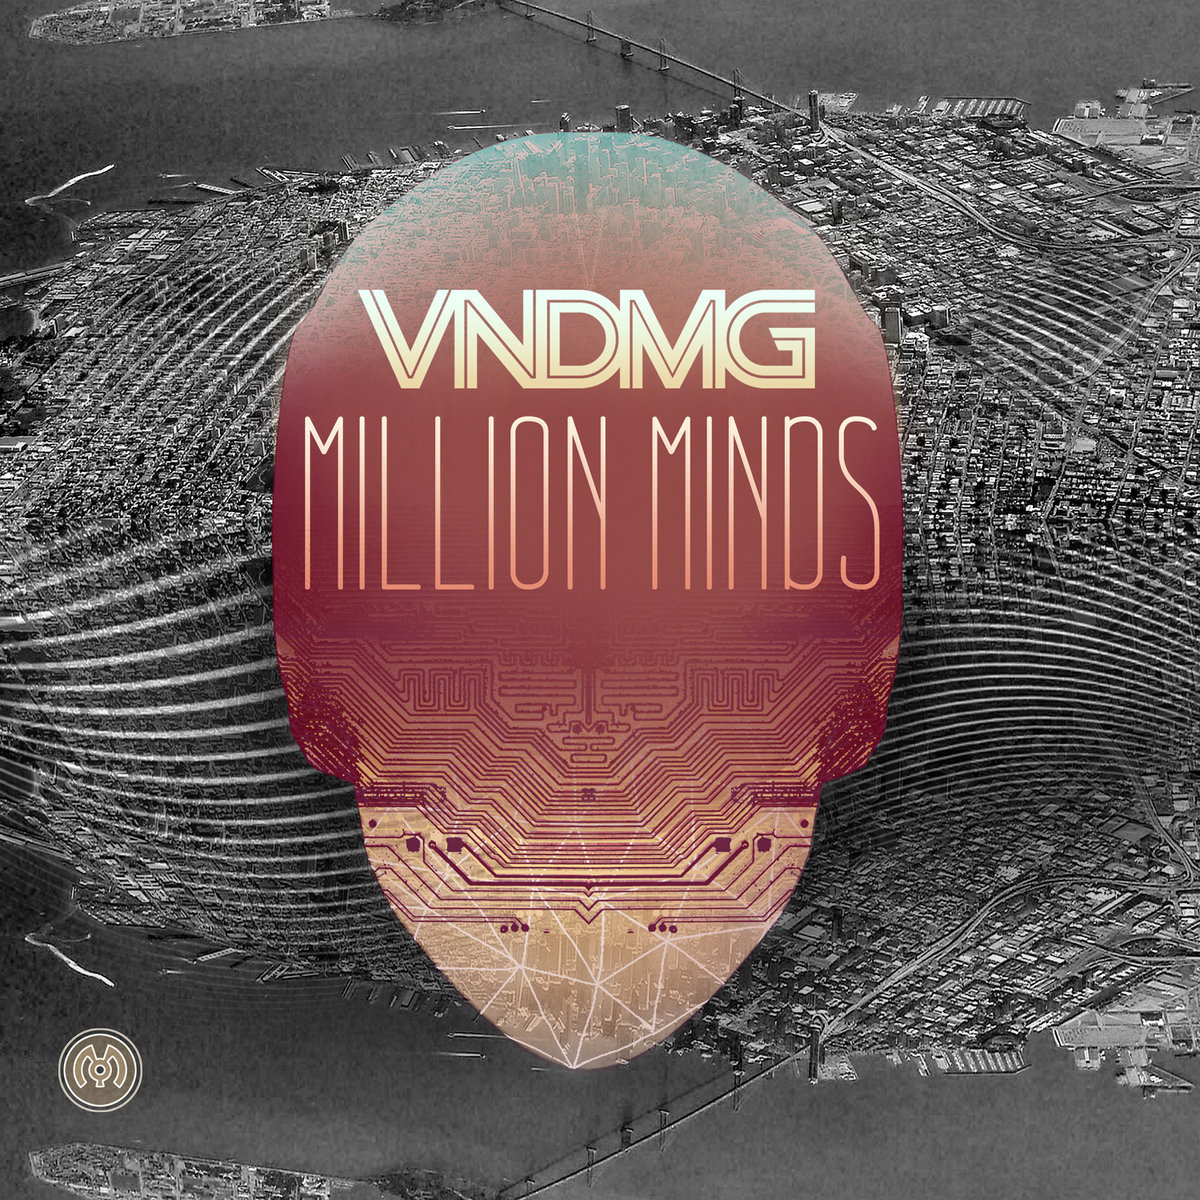 VNDMG - Morning Logic @ 'Million Minds' album (electronic, dubstep)